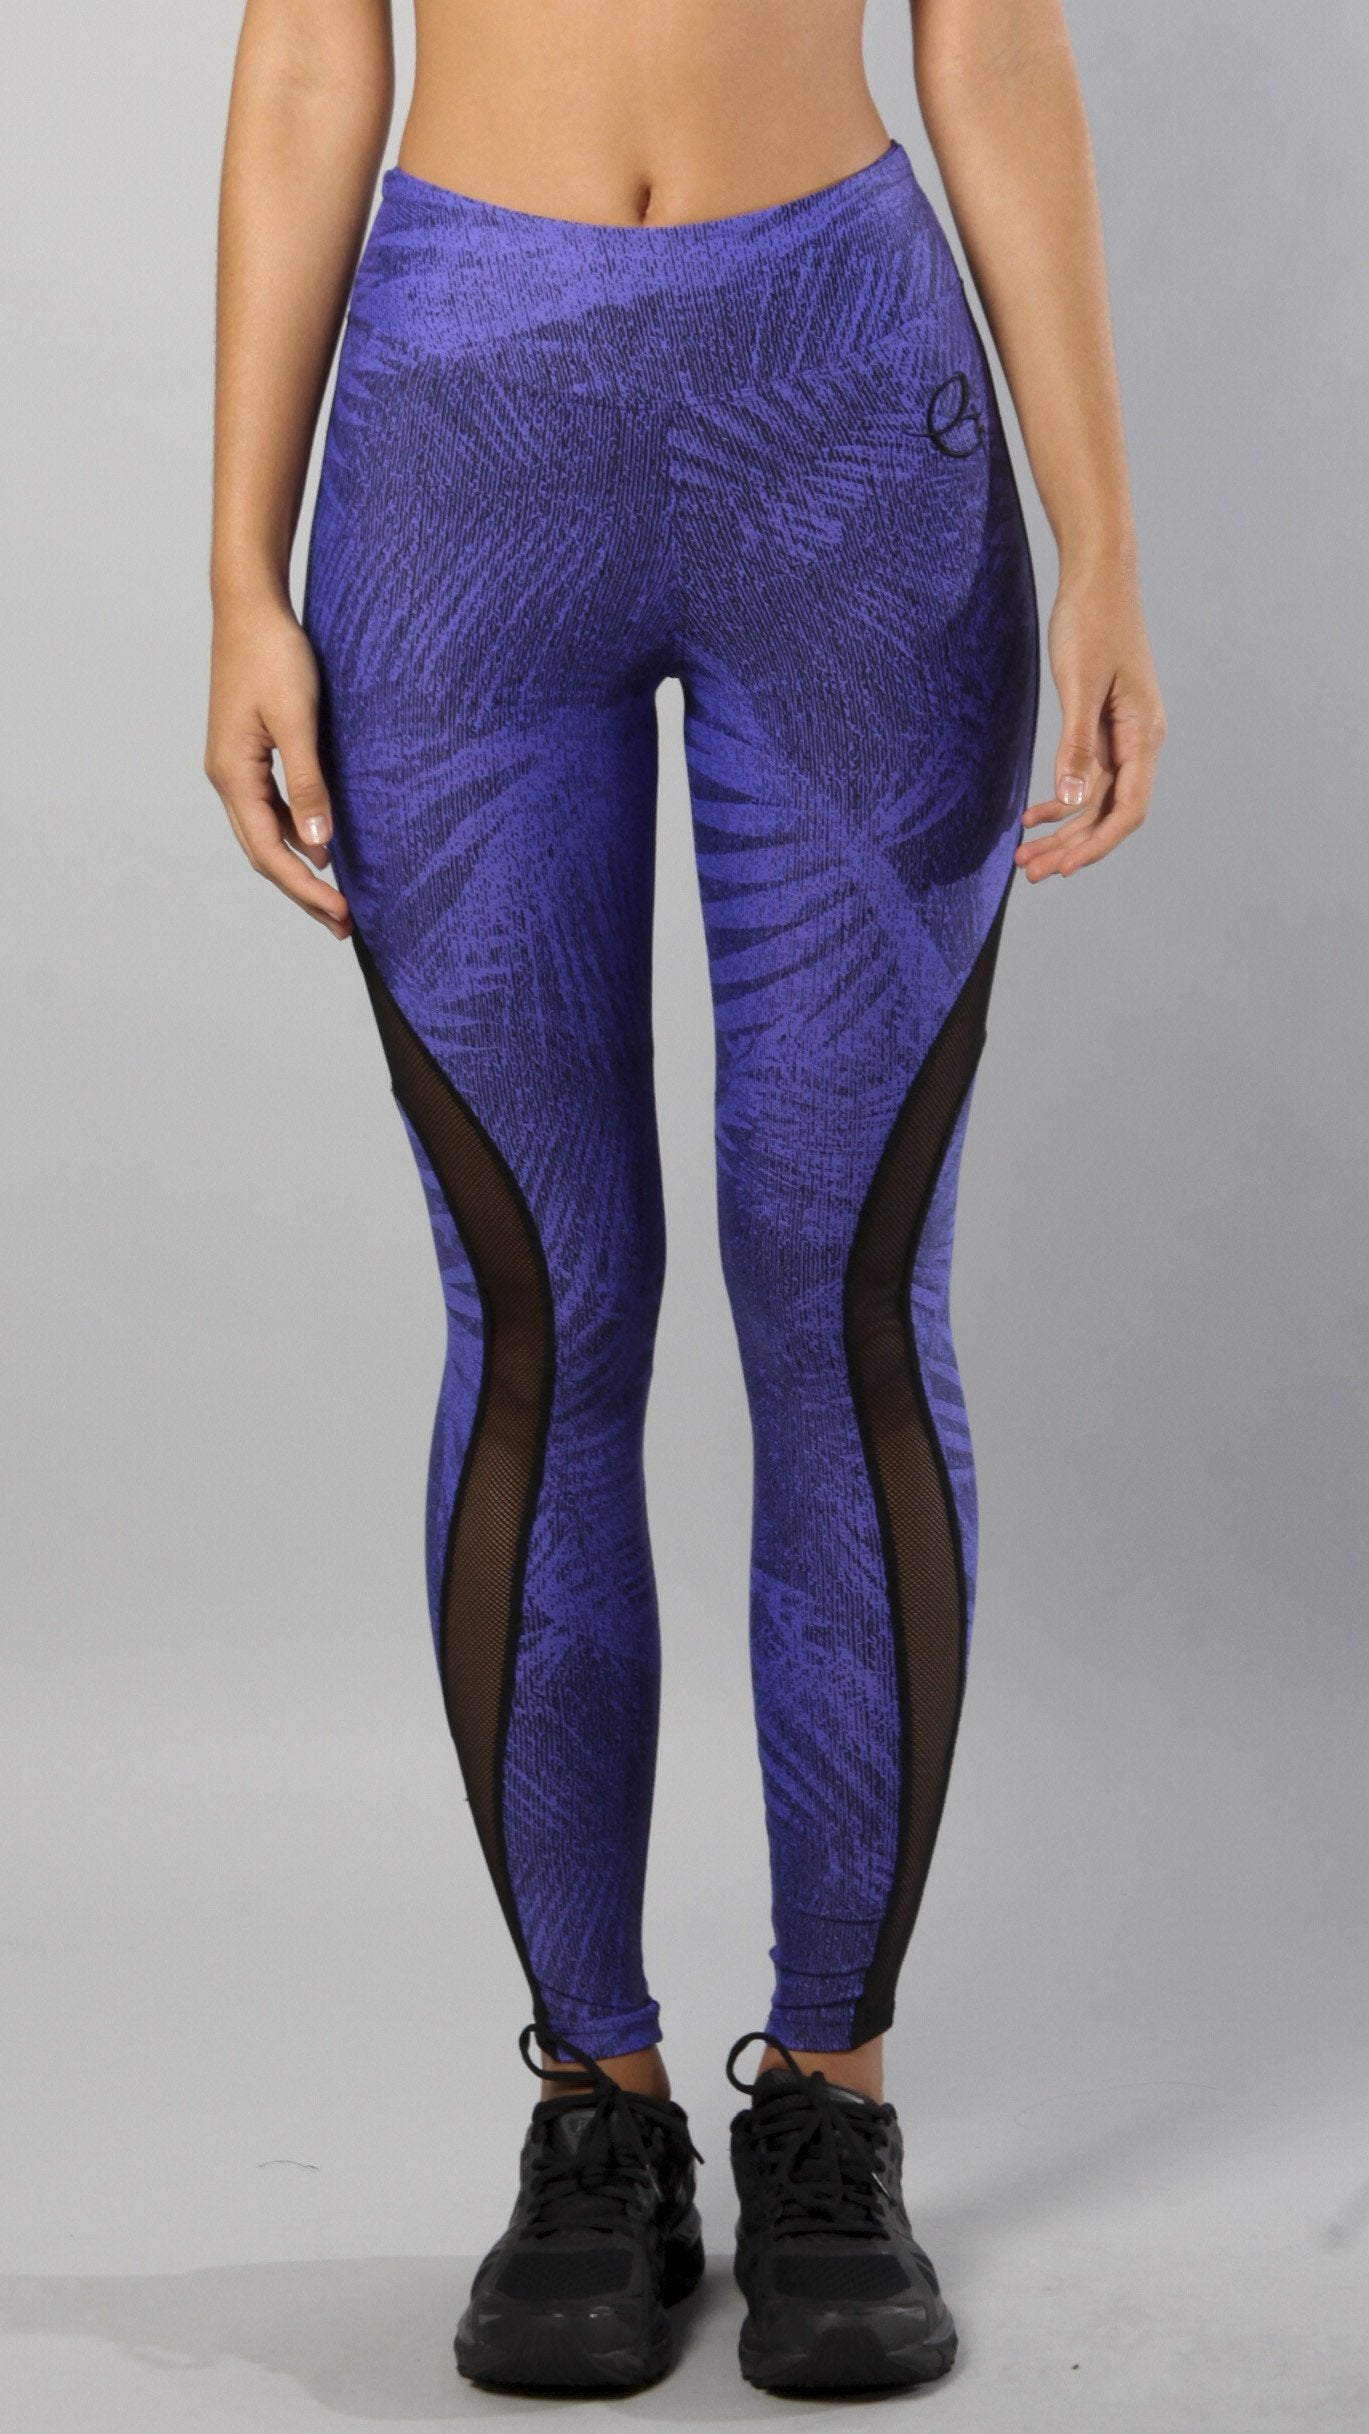 Designer Blue and Black Legging L7005 - Equilibrium Activewear - Image 1